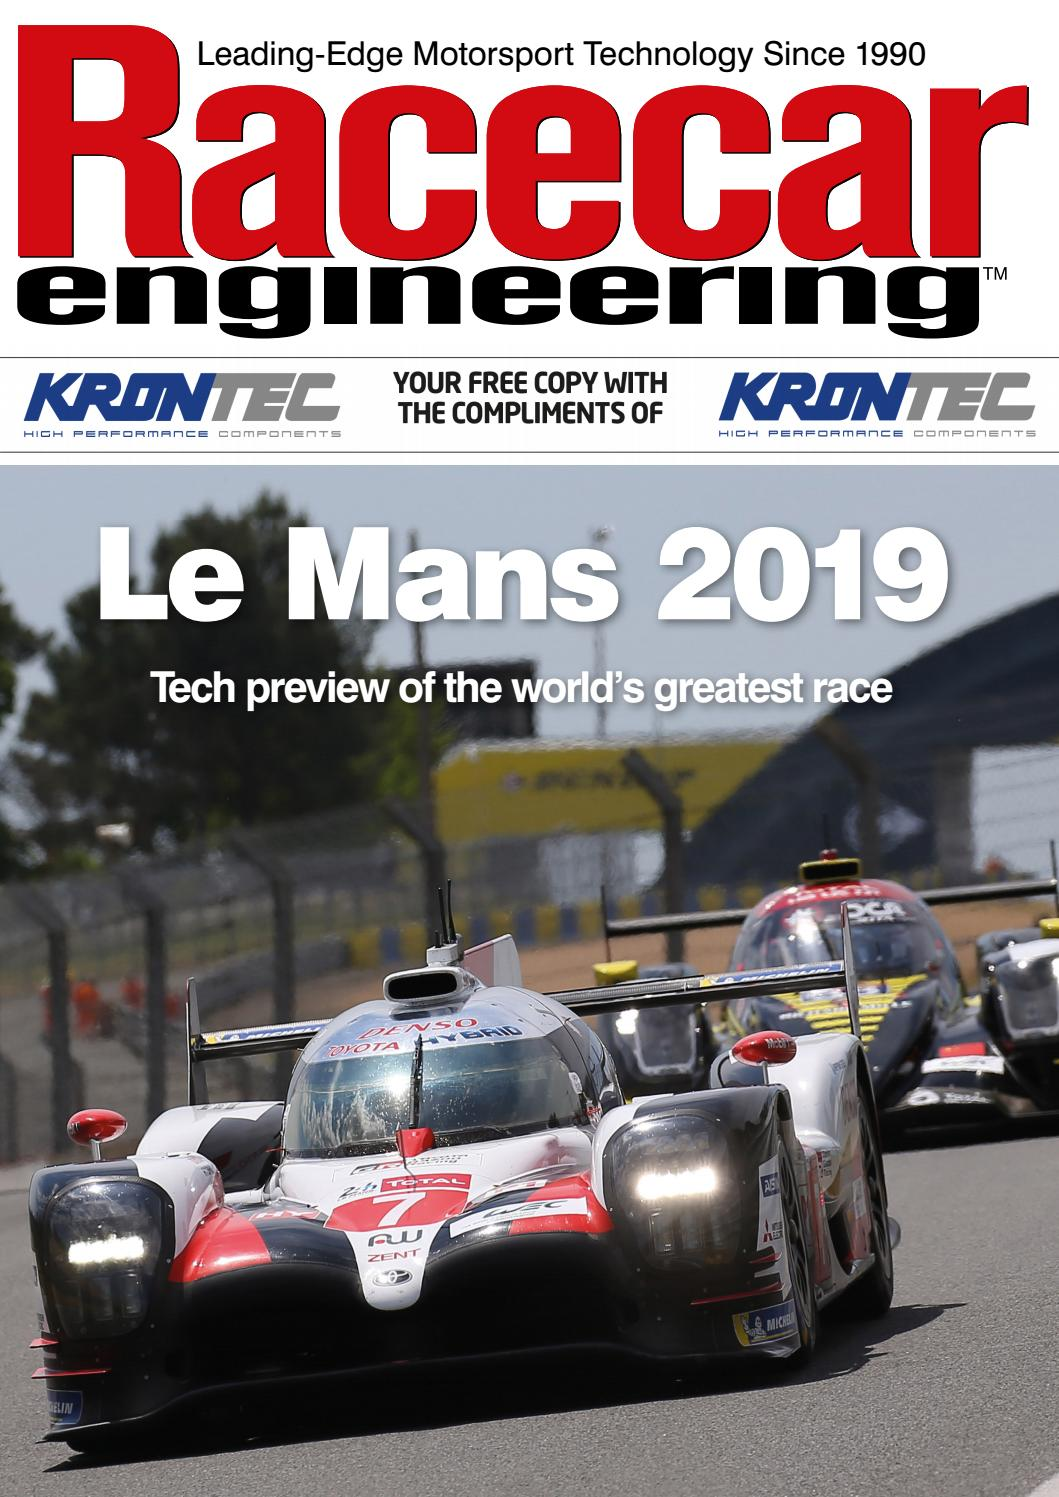 Racecar Engineering Le Mans 2019 by The Chelsea Magazine